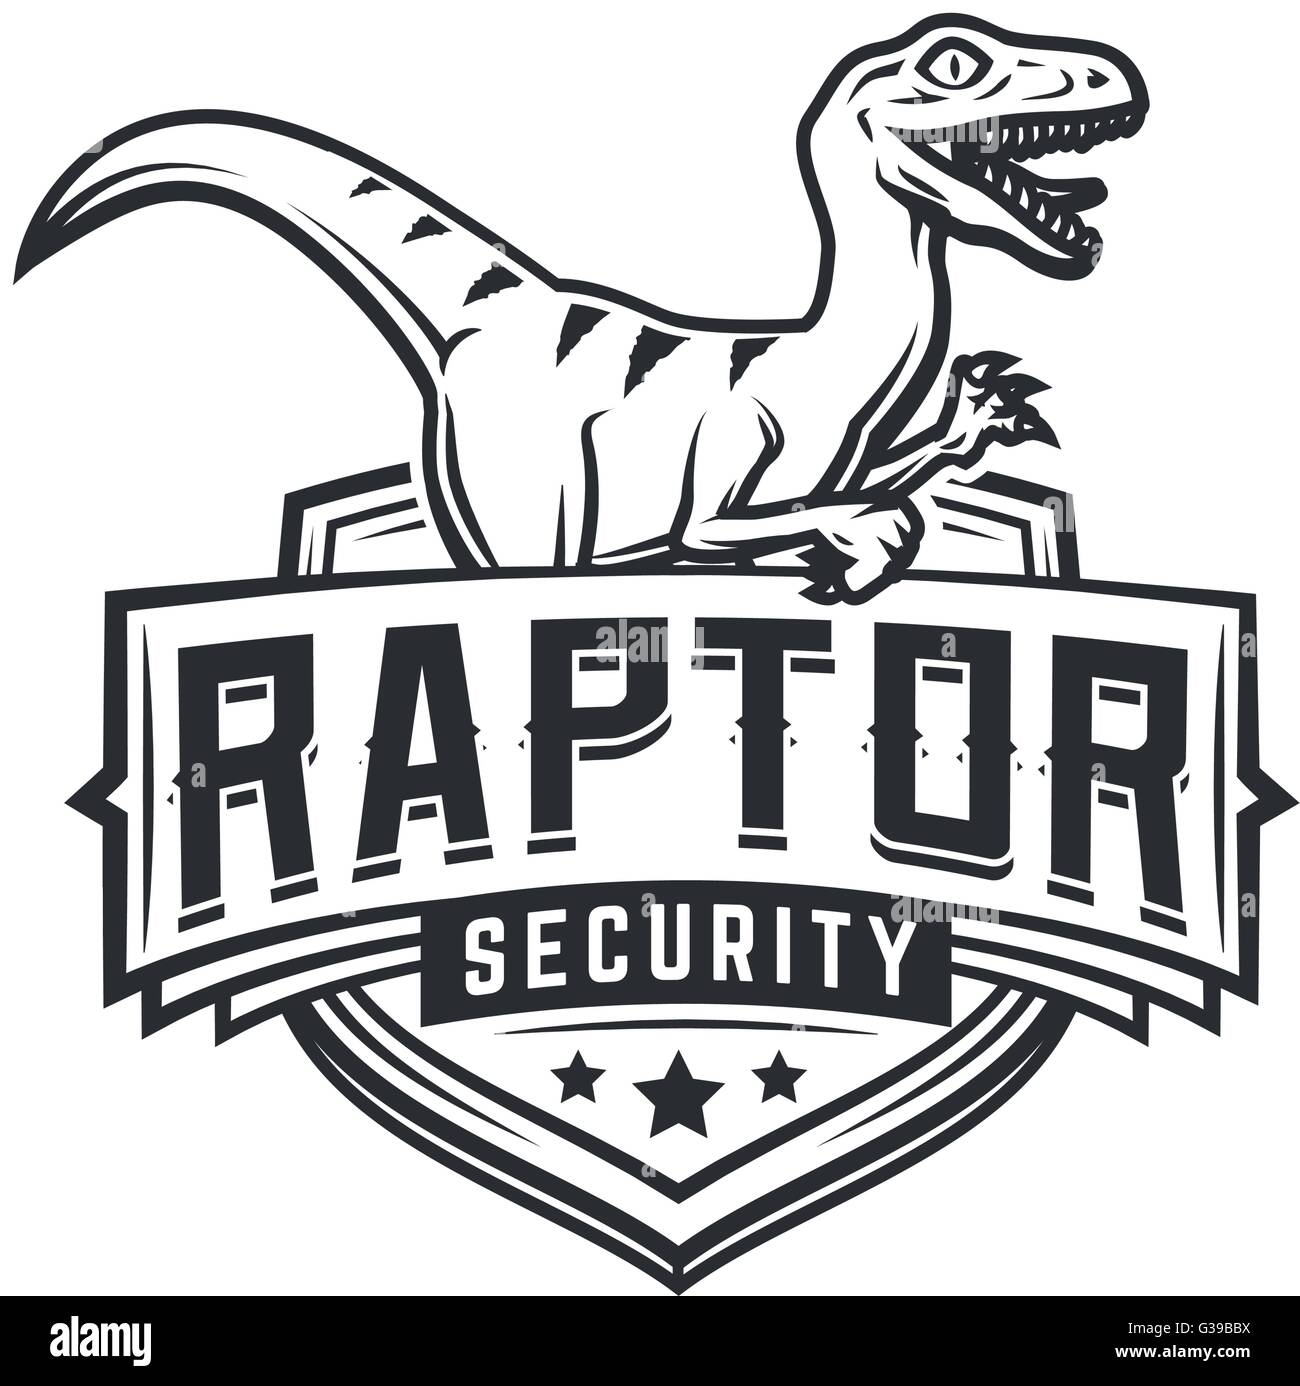 Raptor sport logo mascot design. Vintage college team coat of arms ...